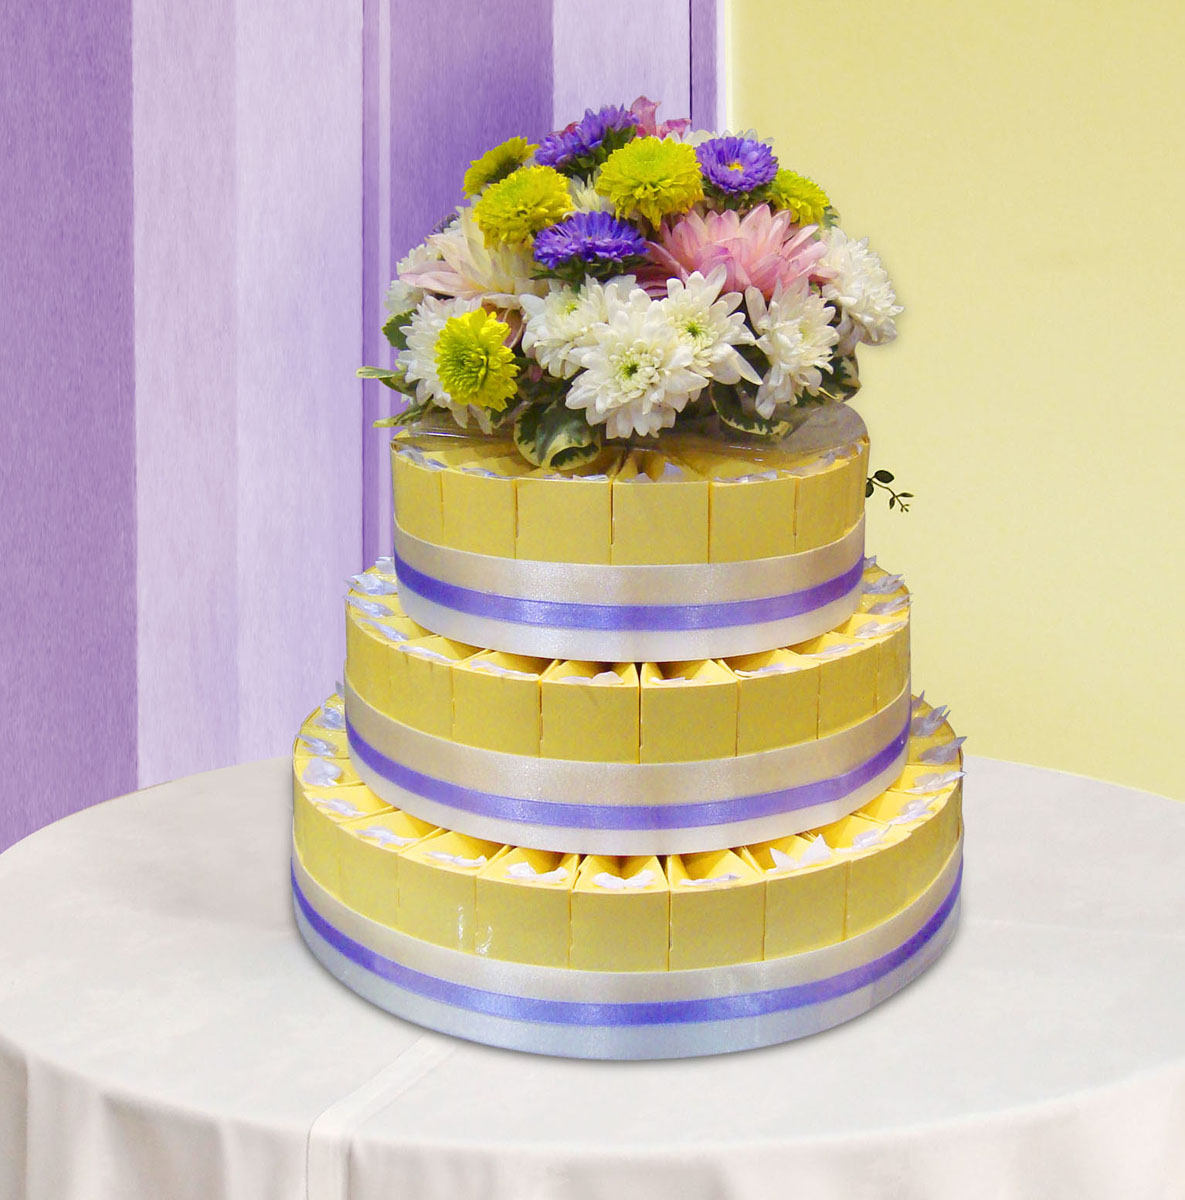 Cake Decorating Real Flowers : Party Olala: REAL FLOWER CAKE TOPPERS!